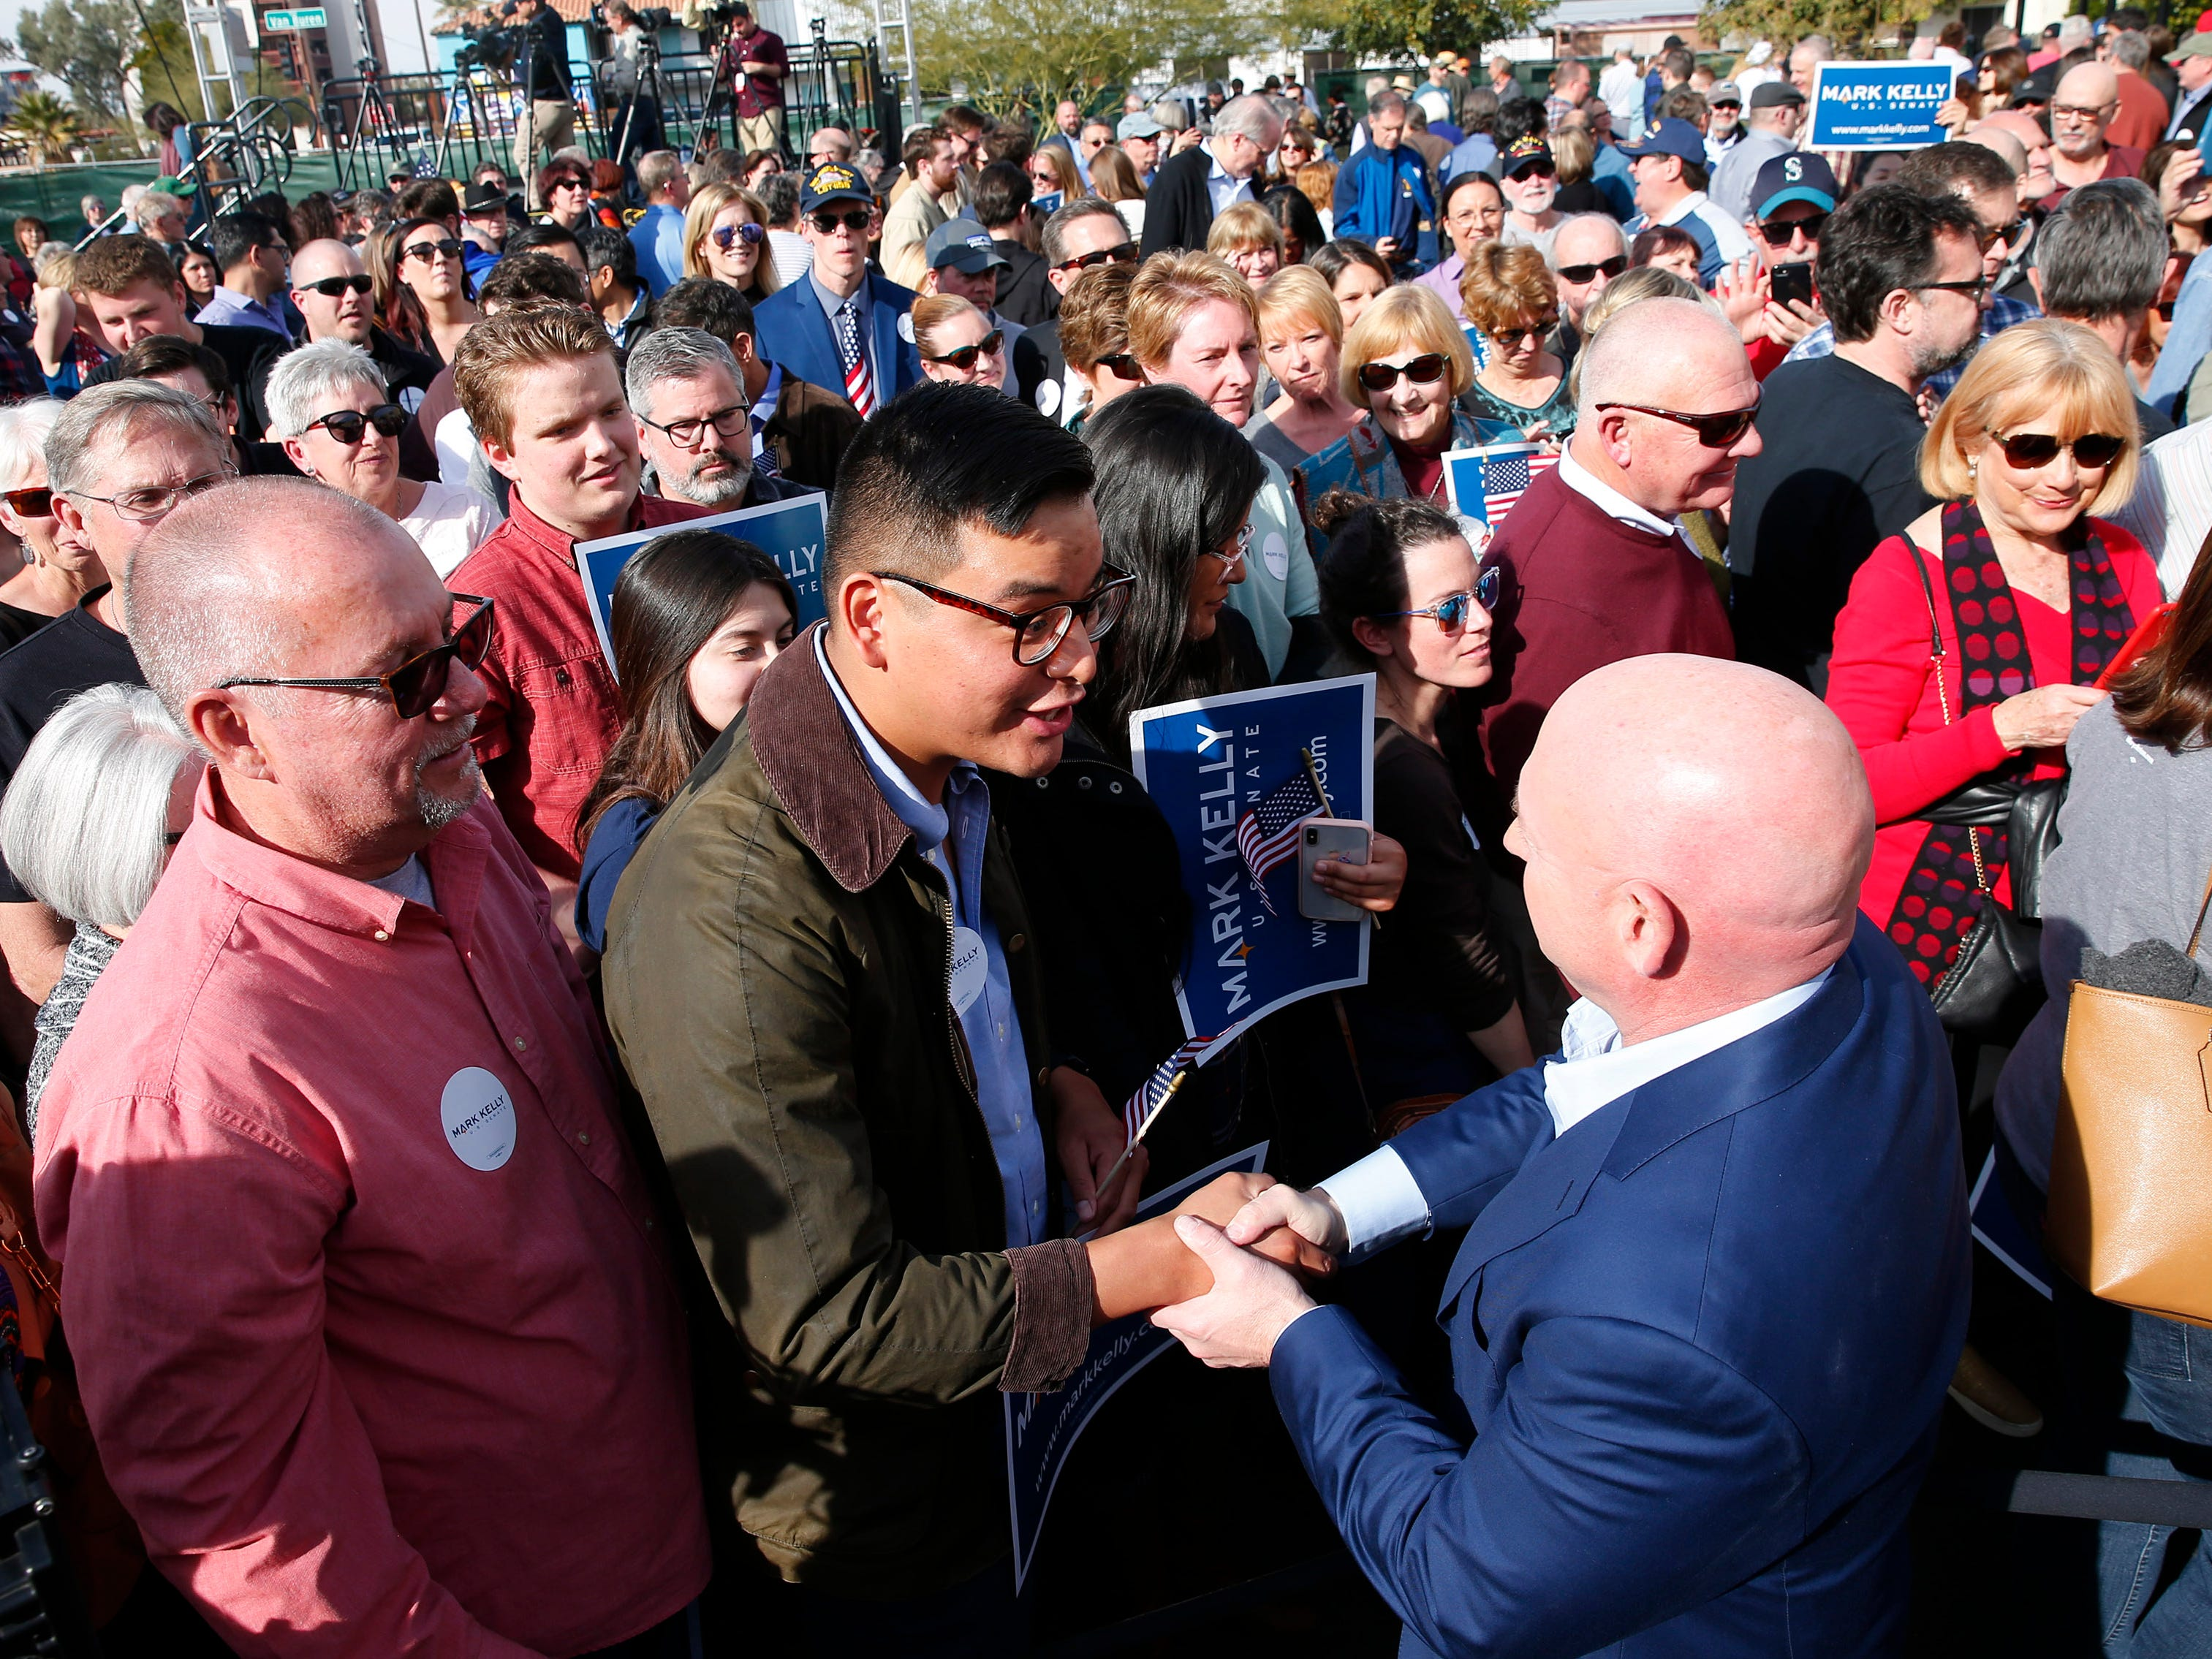 Mark Kelly greets his supporters during a Senate launch event in Phoenix, Ariz. on Feb. 24, 2019. Kelly is running as a Democrat for the late Sen. John McCain's seat.